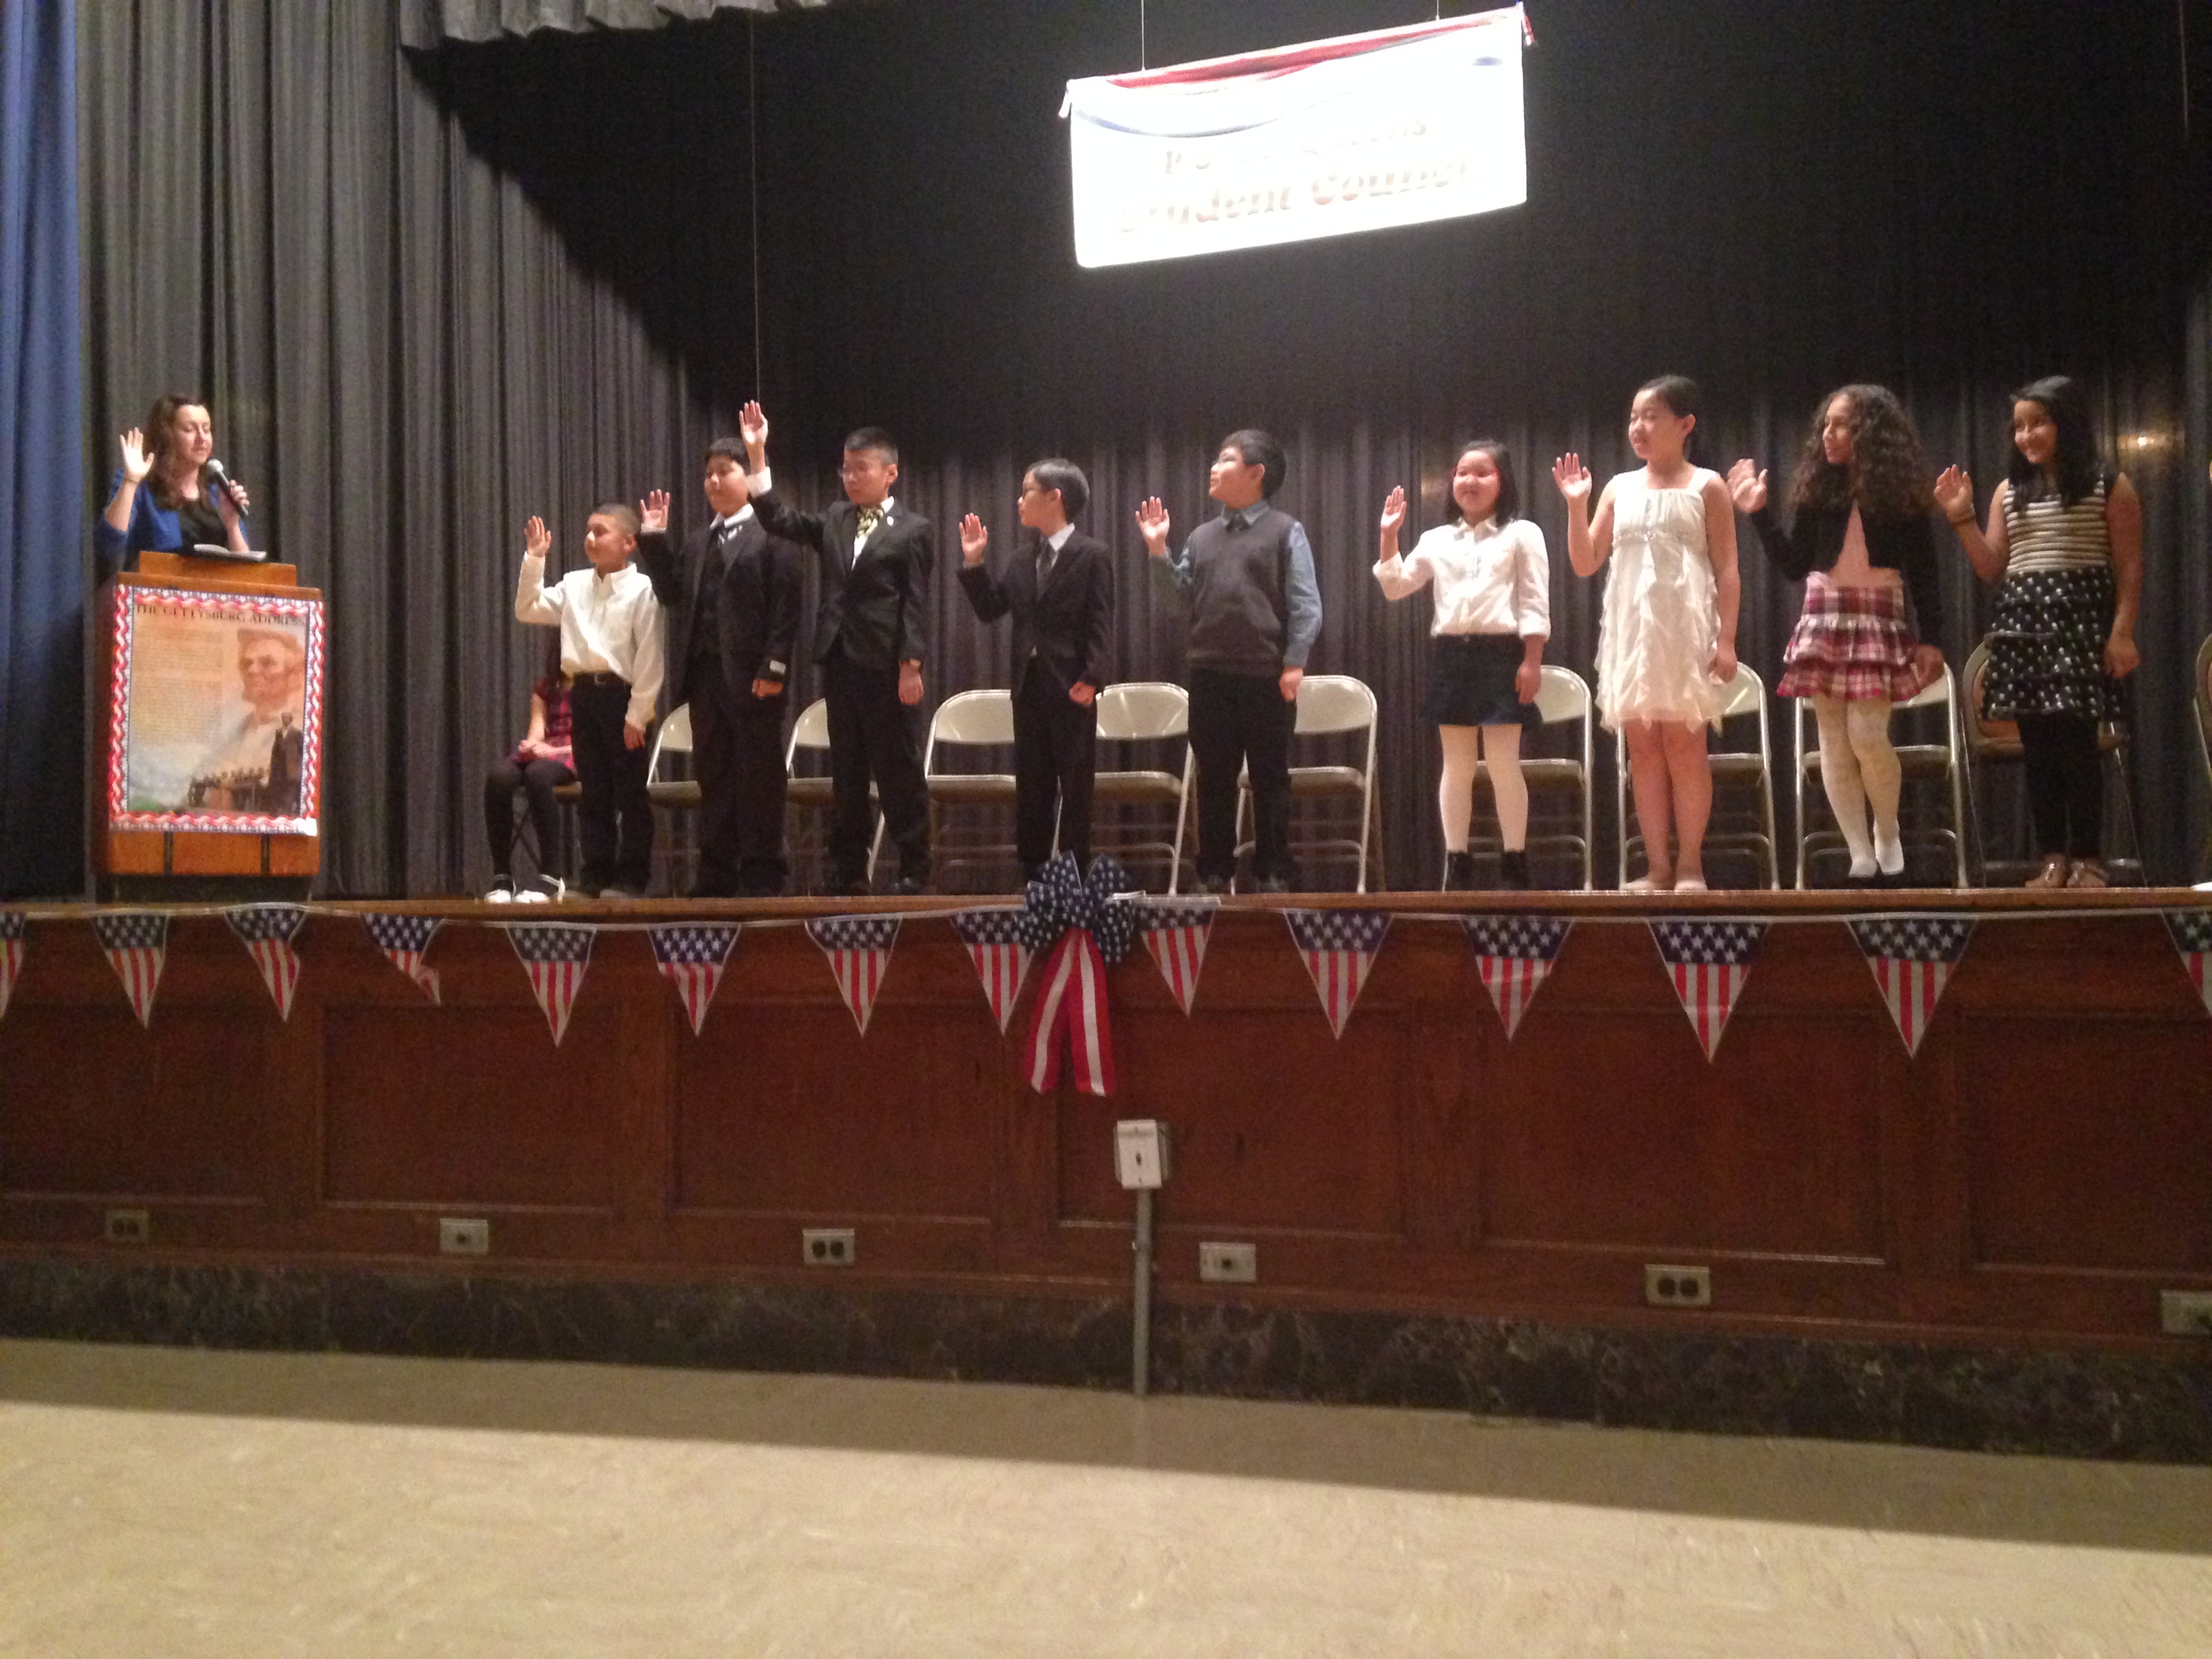 Assemblywoman Nily Rozic installed new officers of the student government at P.S. 26 Rufus King in Fresh Meadows.